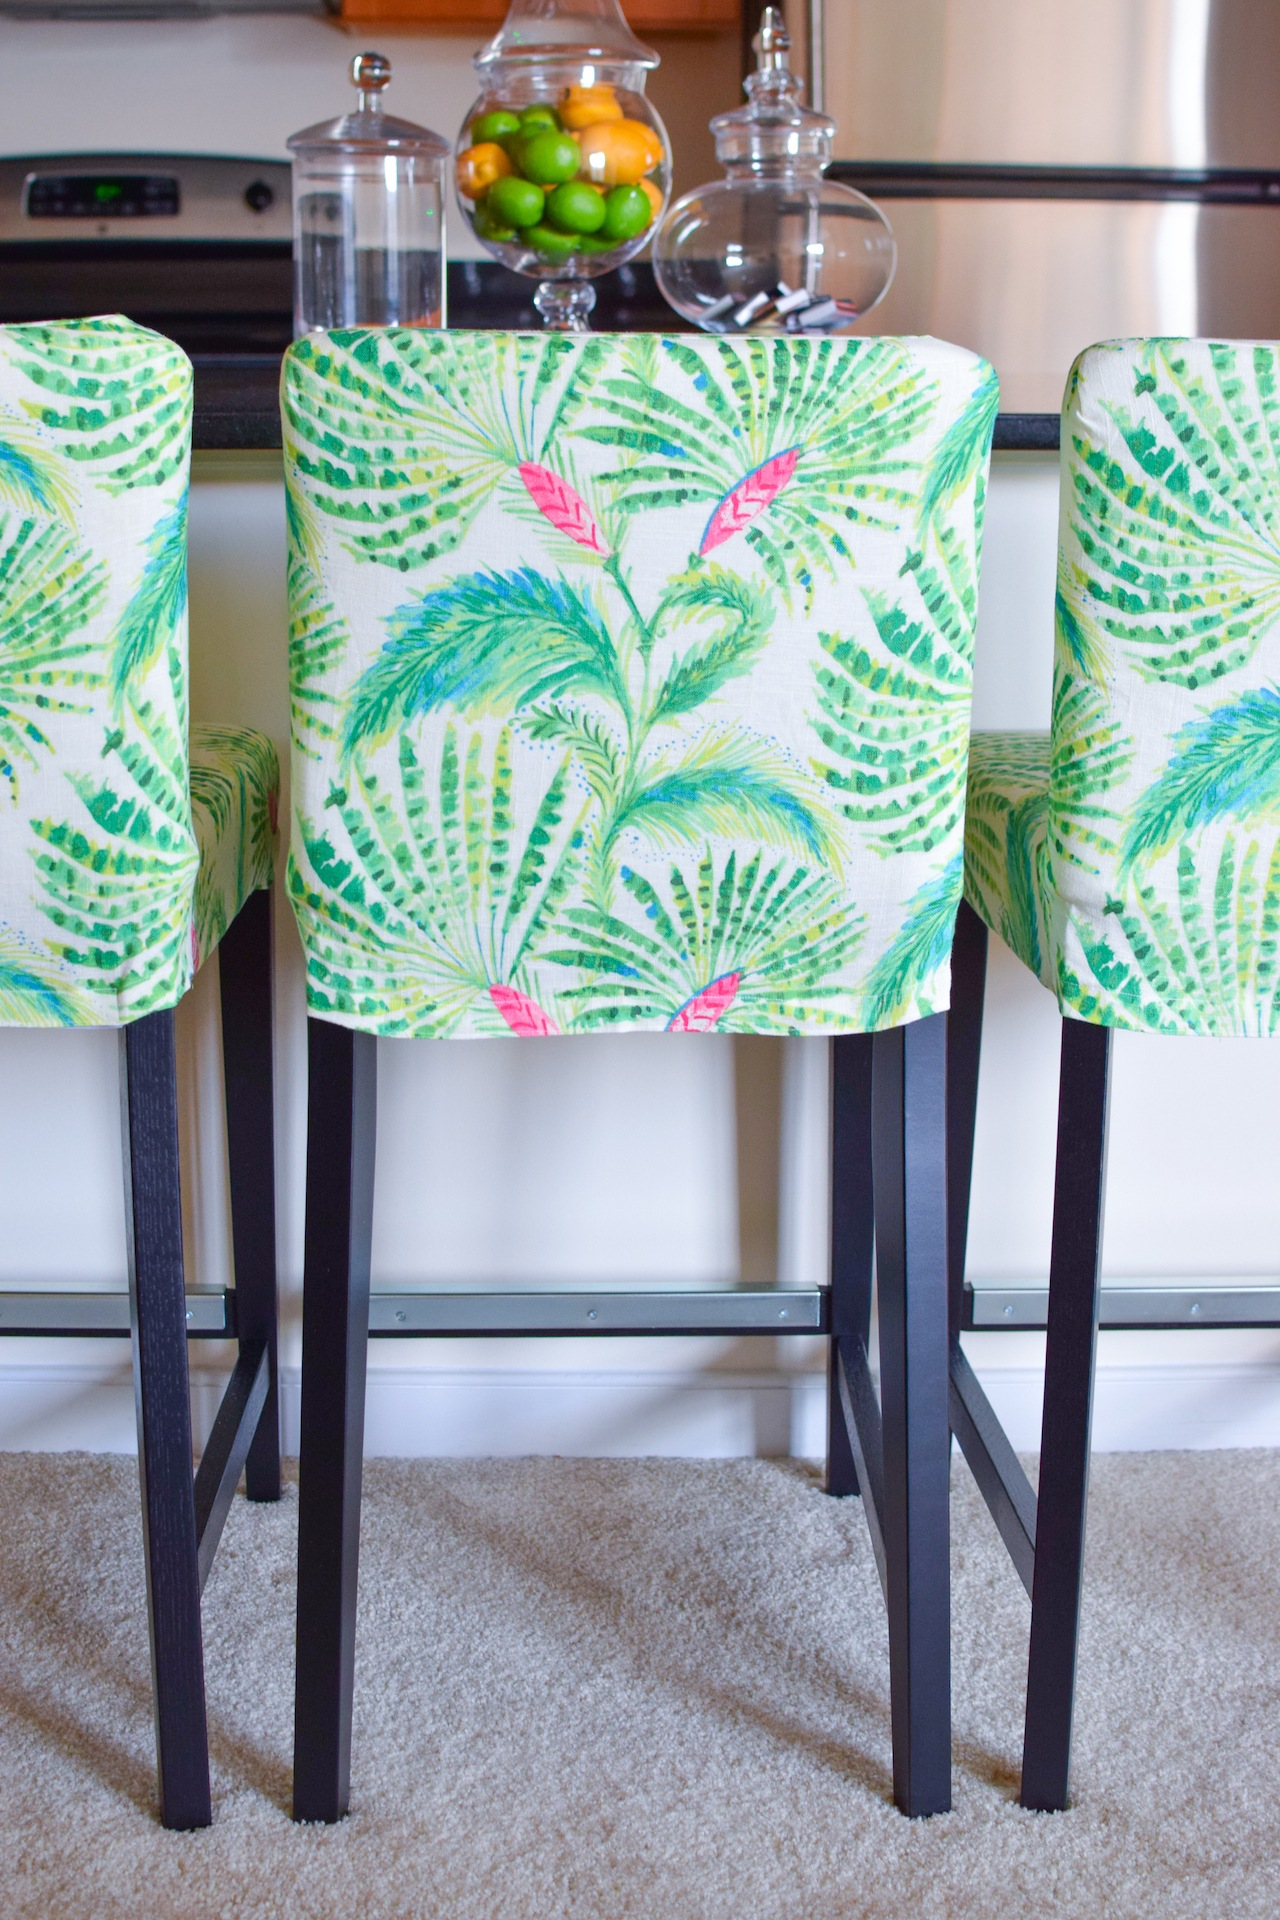 Strange Ikea Henriksdal Bar Stool Slipcover Rockin Cushions A Gmtry Best Dining Table And Chair Ideas Images Gmtryco